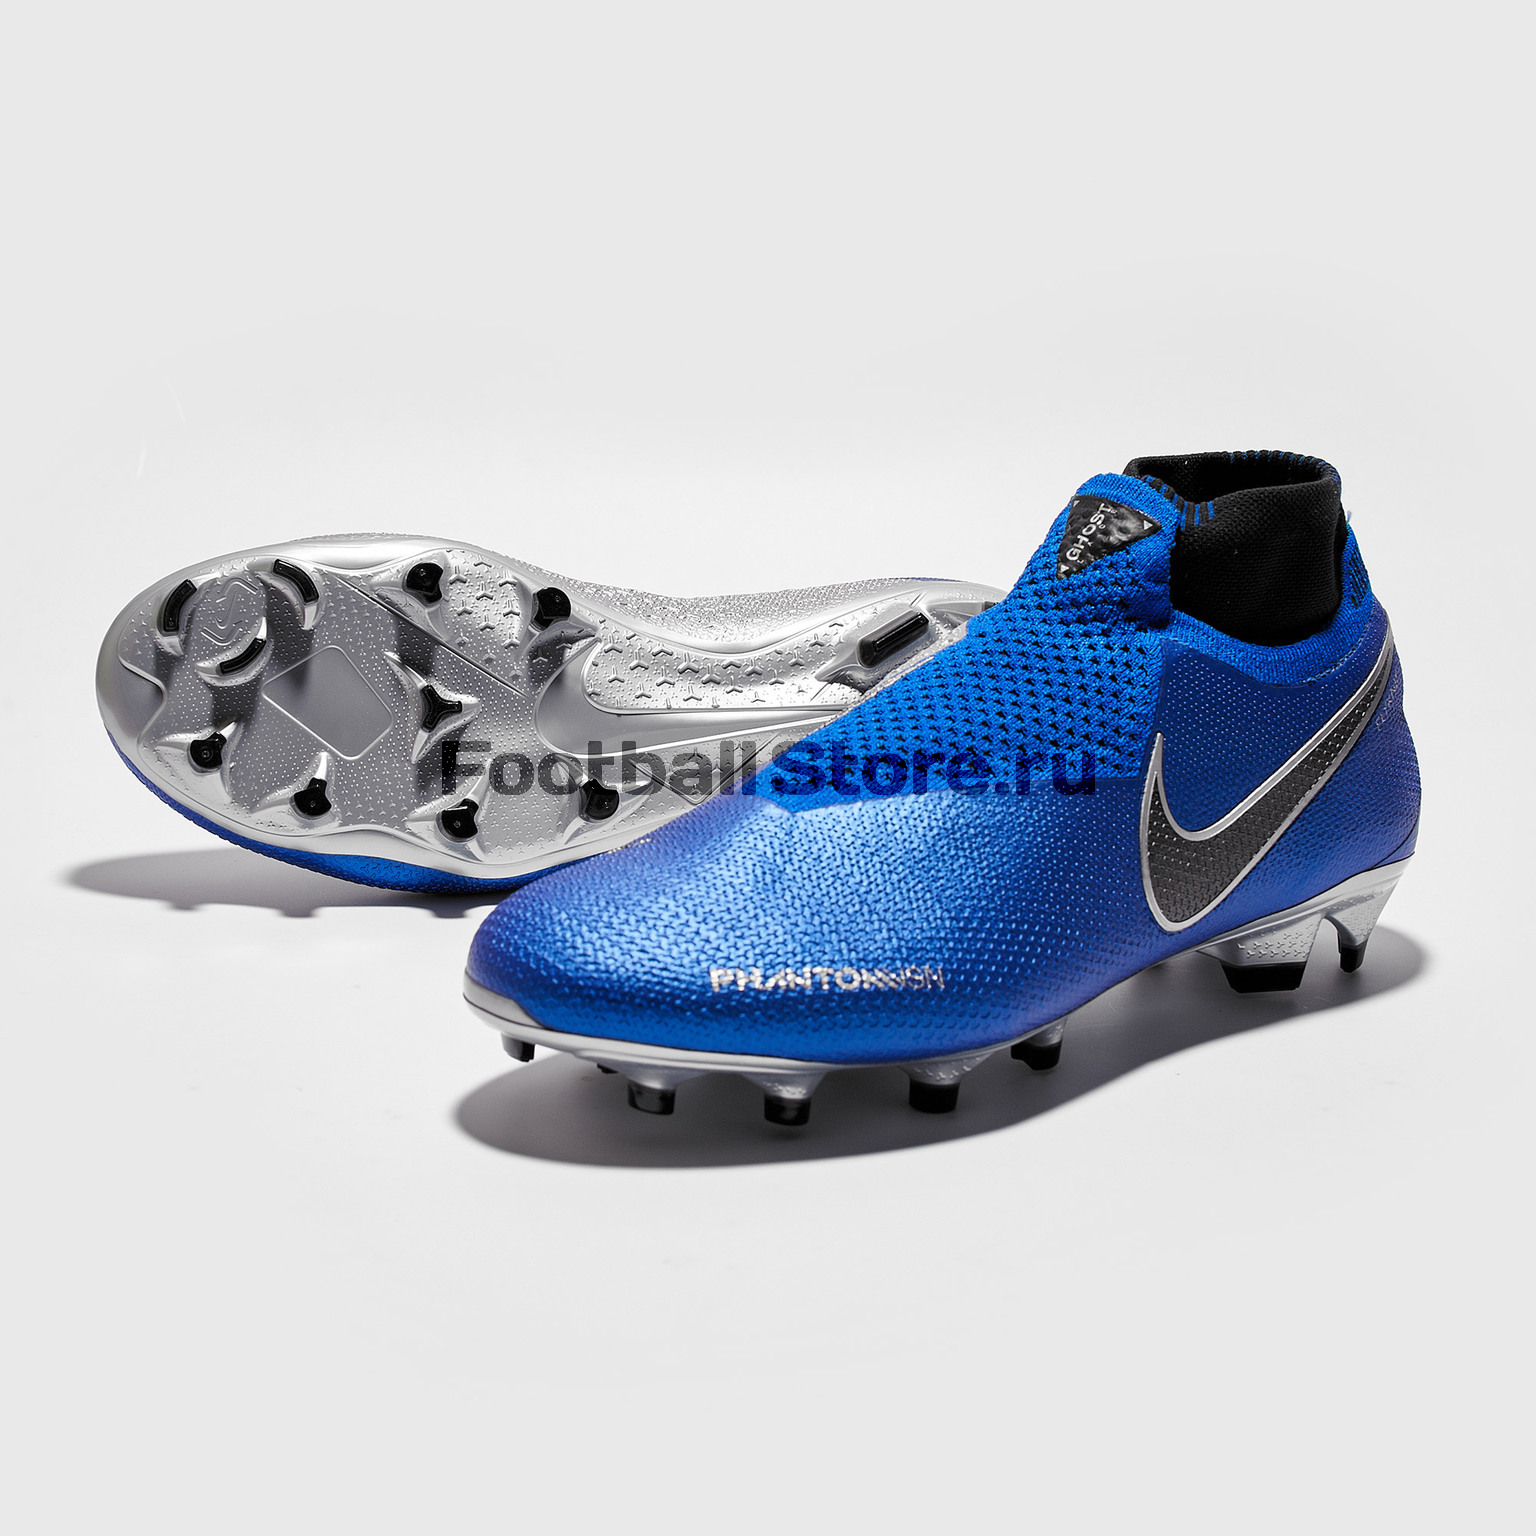 Бутсы Nike Phantom Vision Elite DF FG AO3262-400 бутсы nike mercurial victory iii fg 509128 800